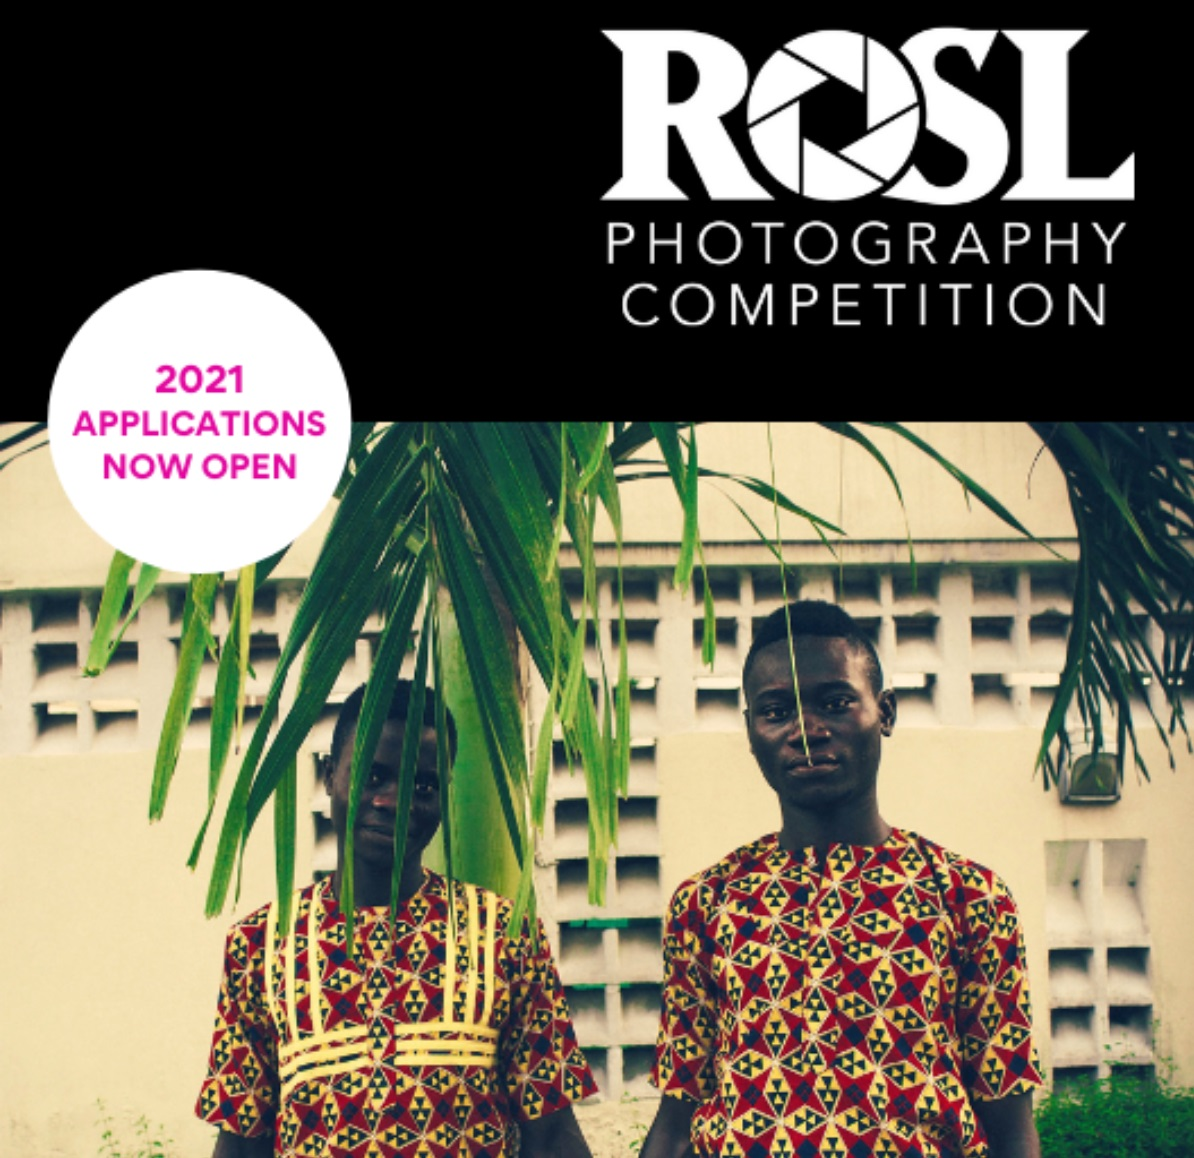 ROSL Photography Competition 2021 - logo